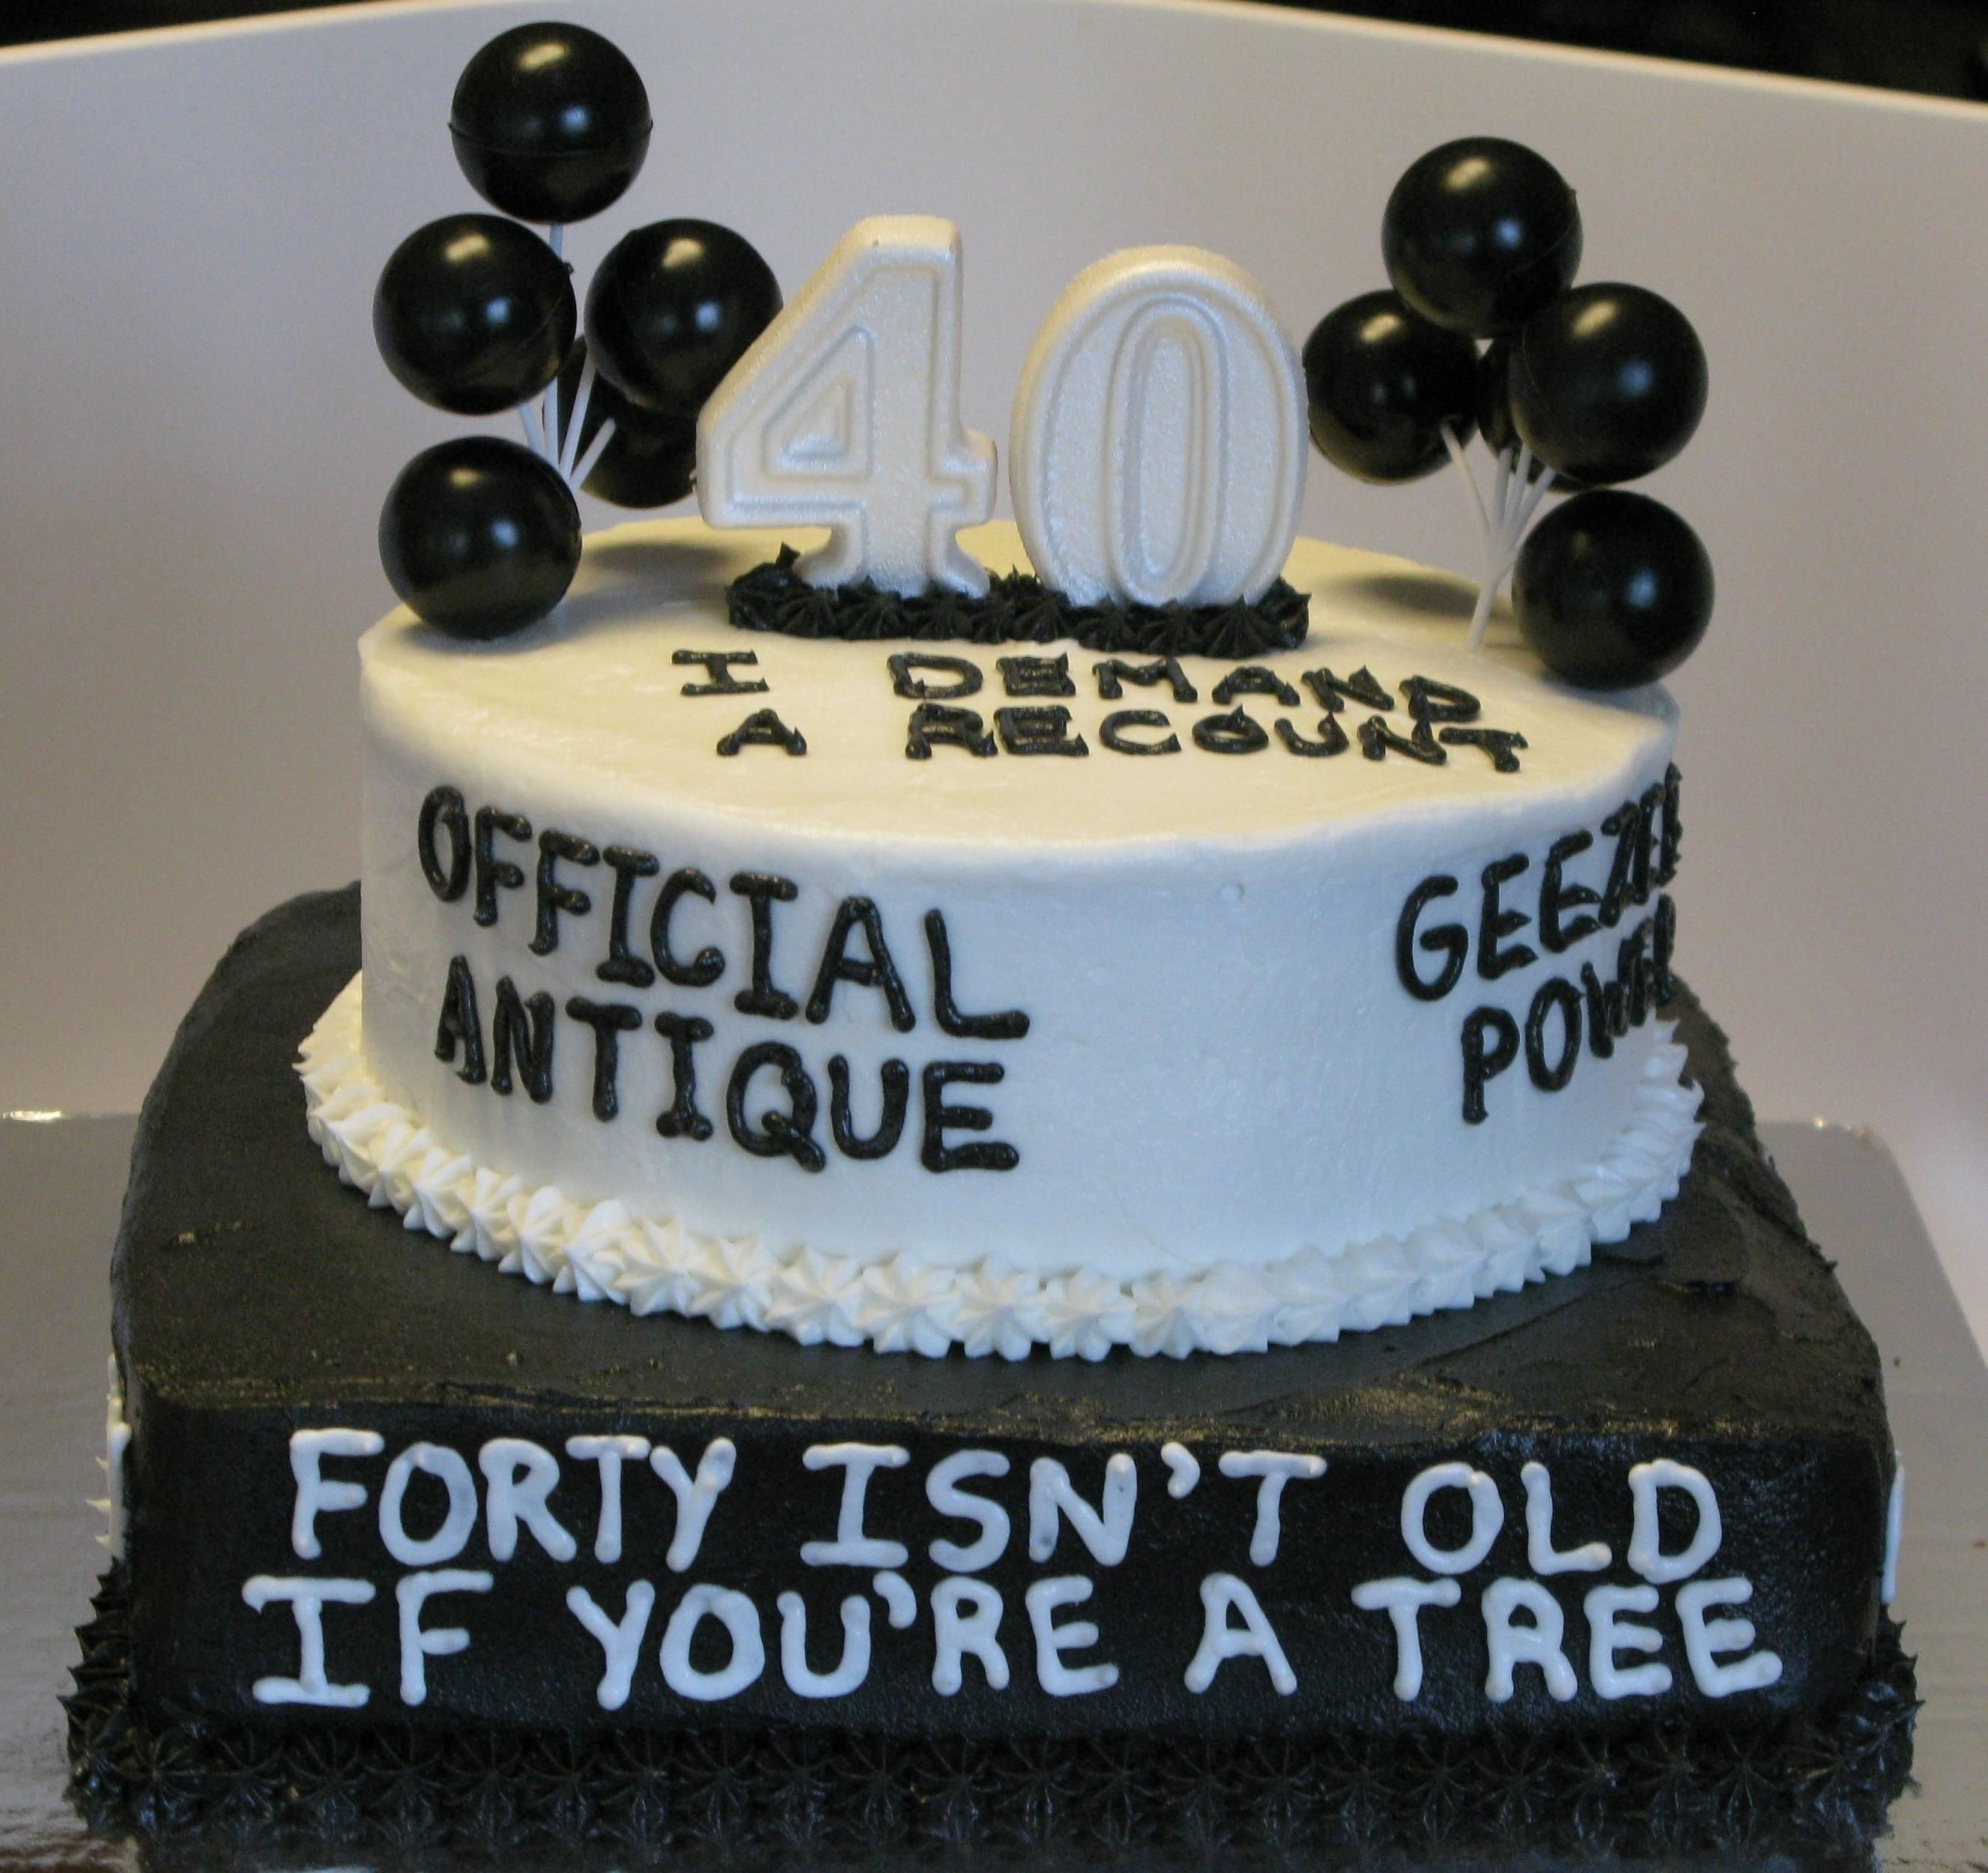 10 Fashionable Gift Ideas For 40 Year Old Woman Over The Hill Birthday Cakes